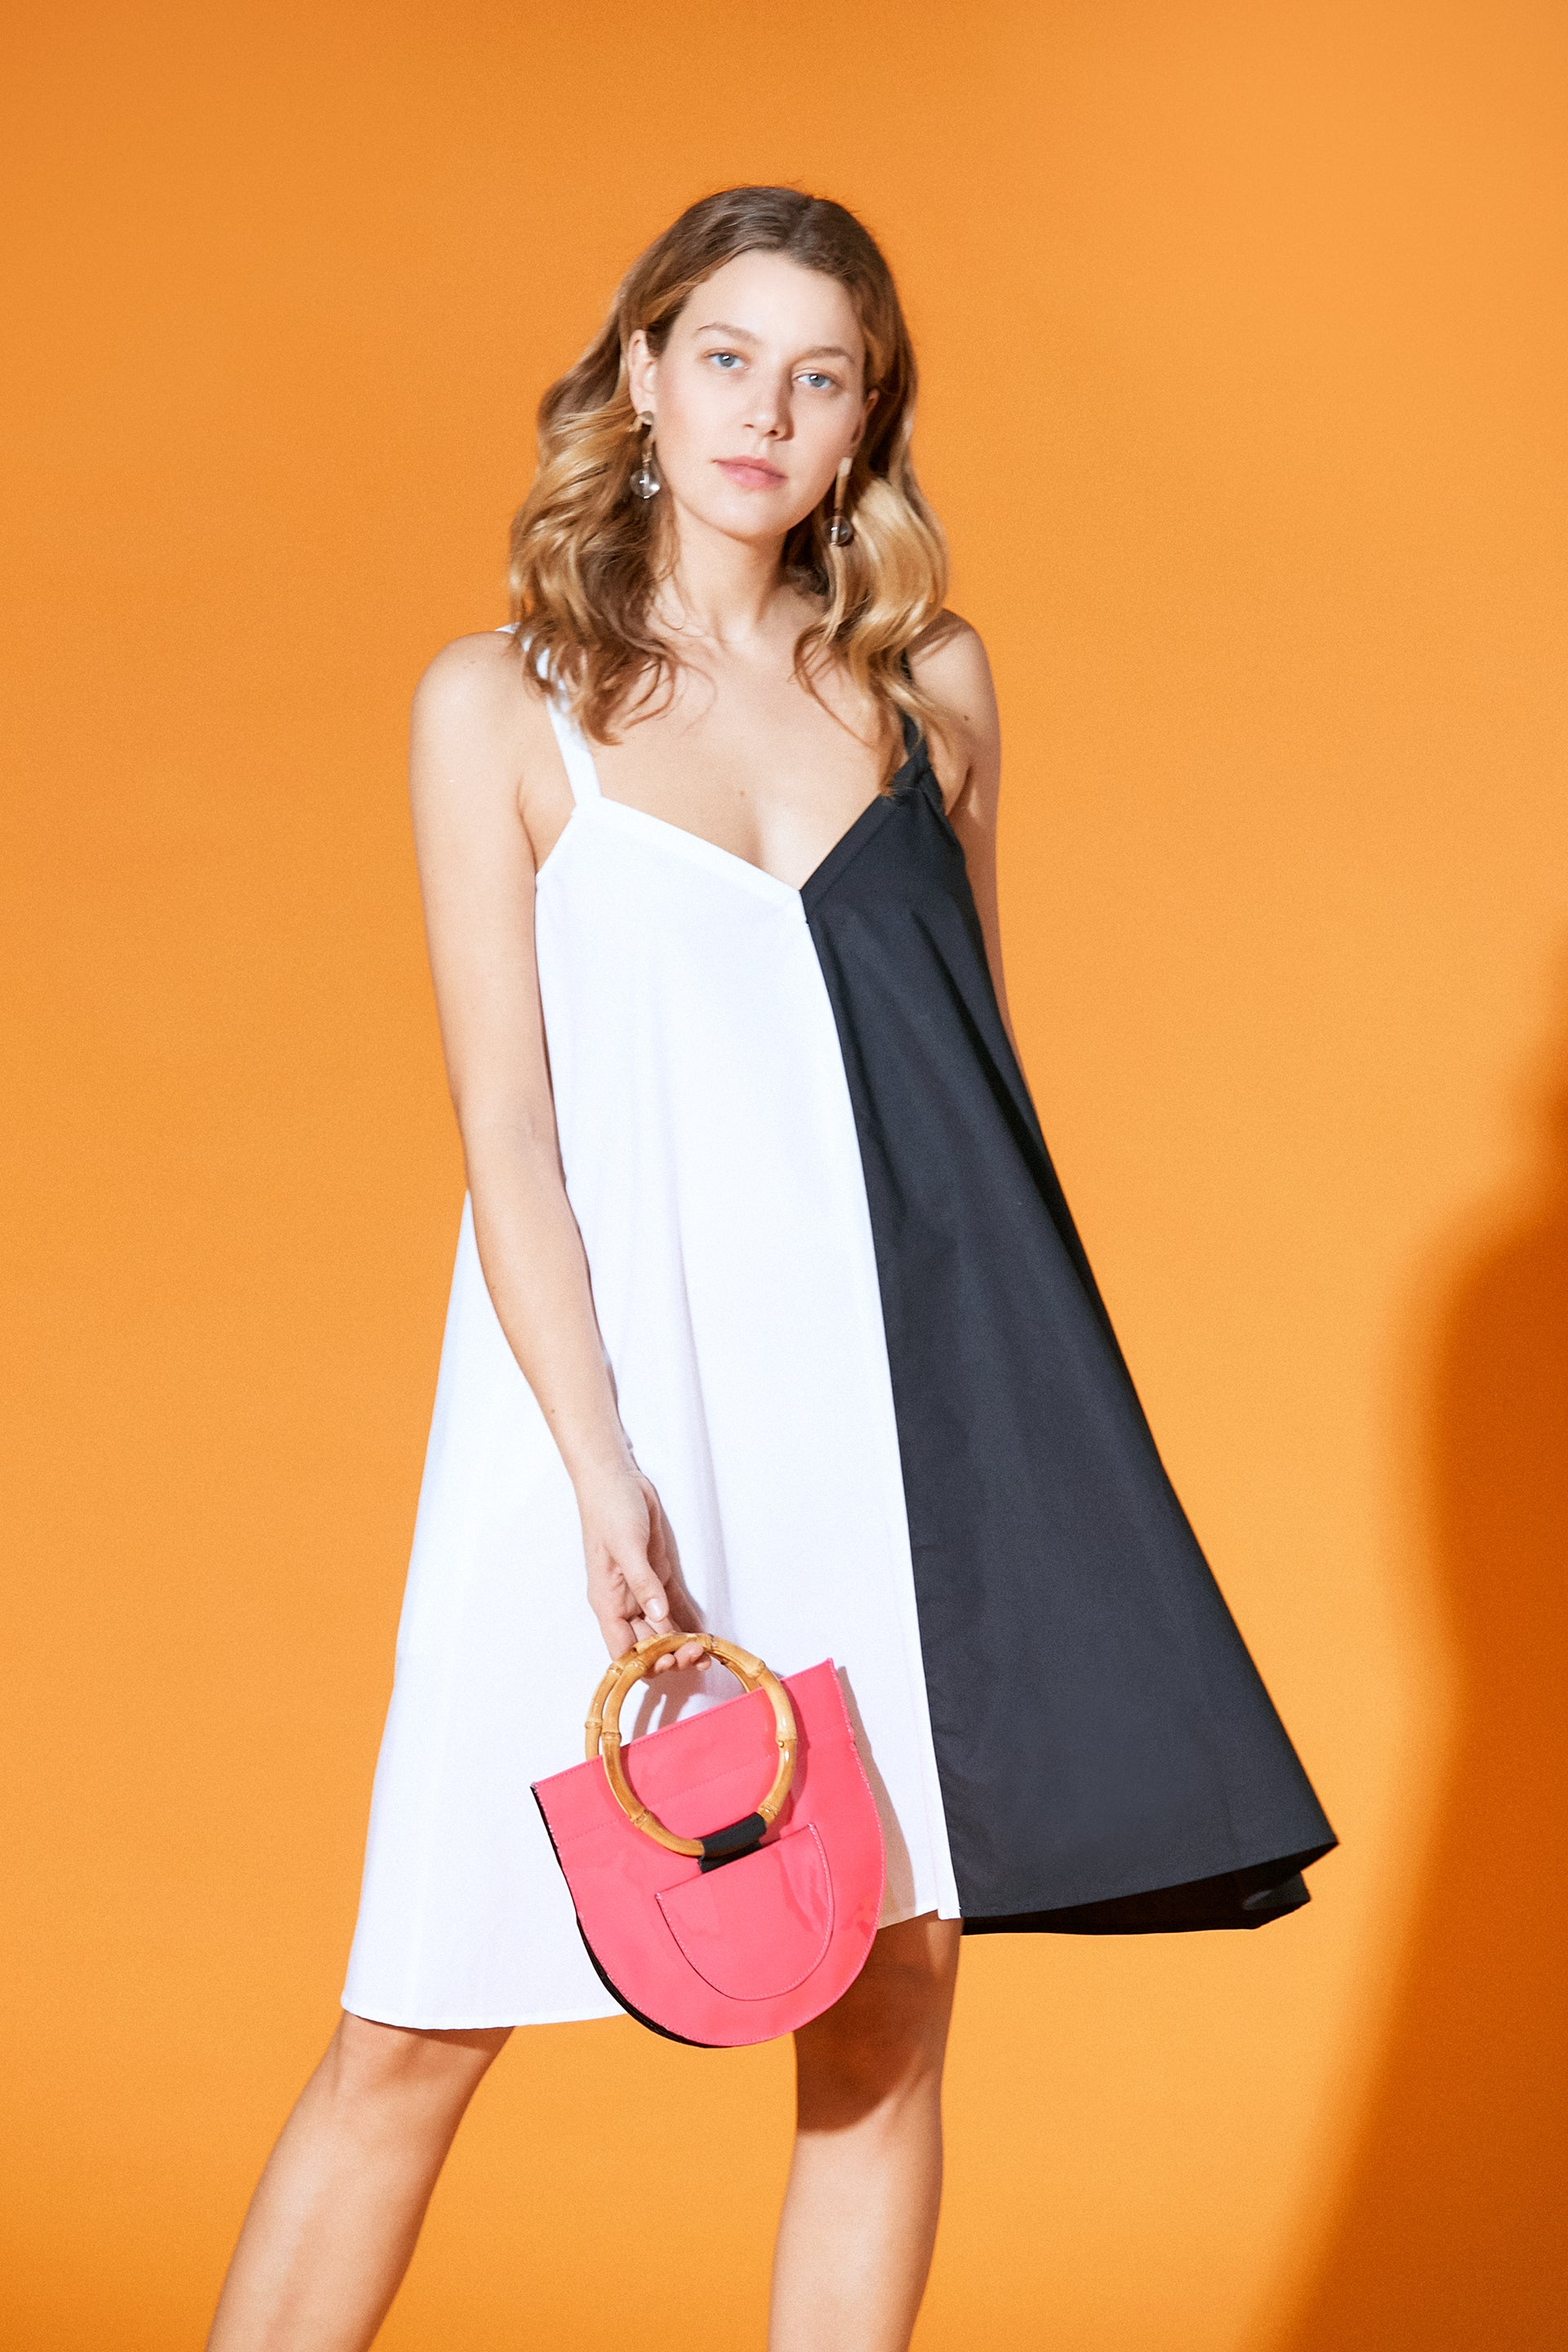 Fiesta Mini Cotton Dress White Black Split